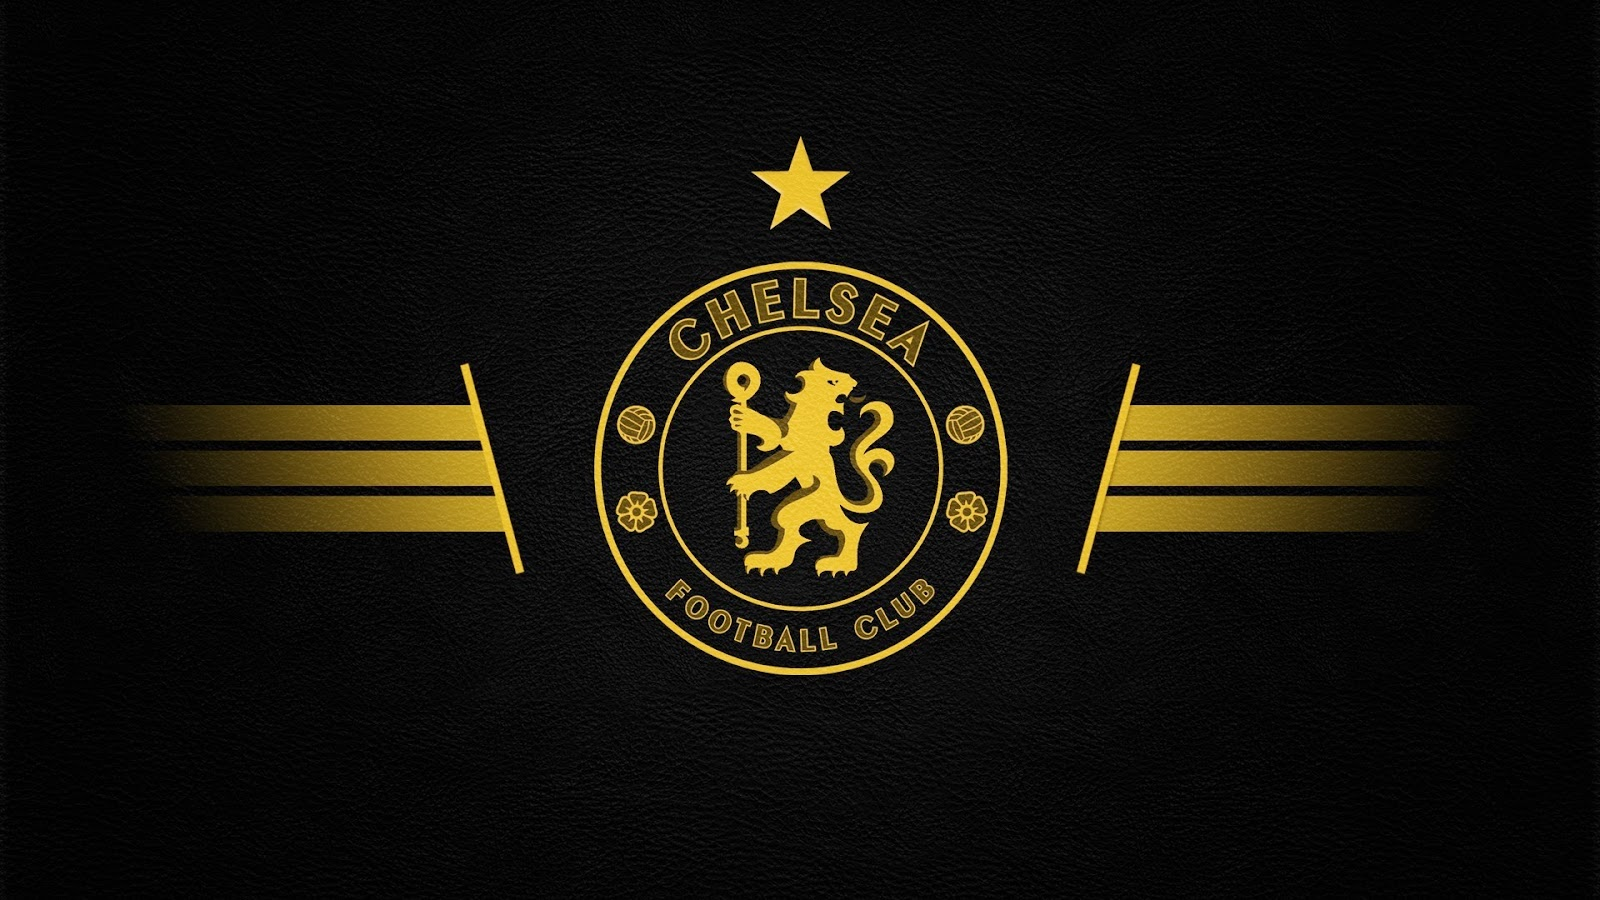 Football Chelsea Football Club Hd Wallpapers